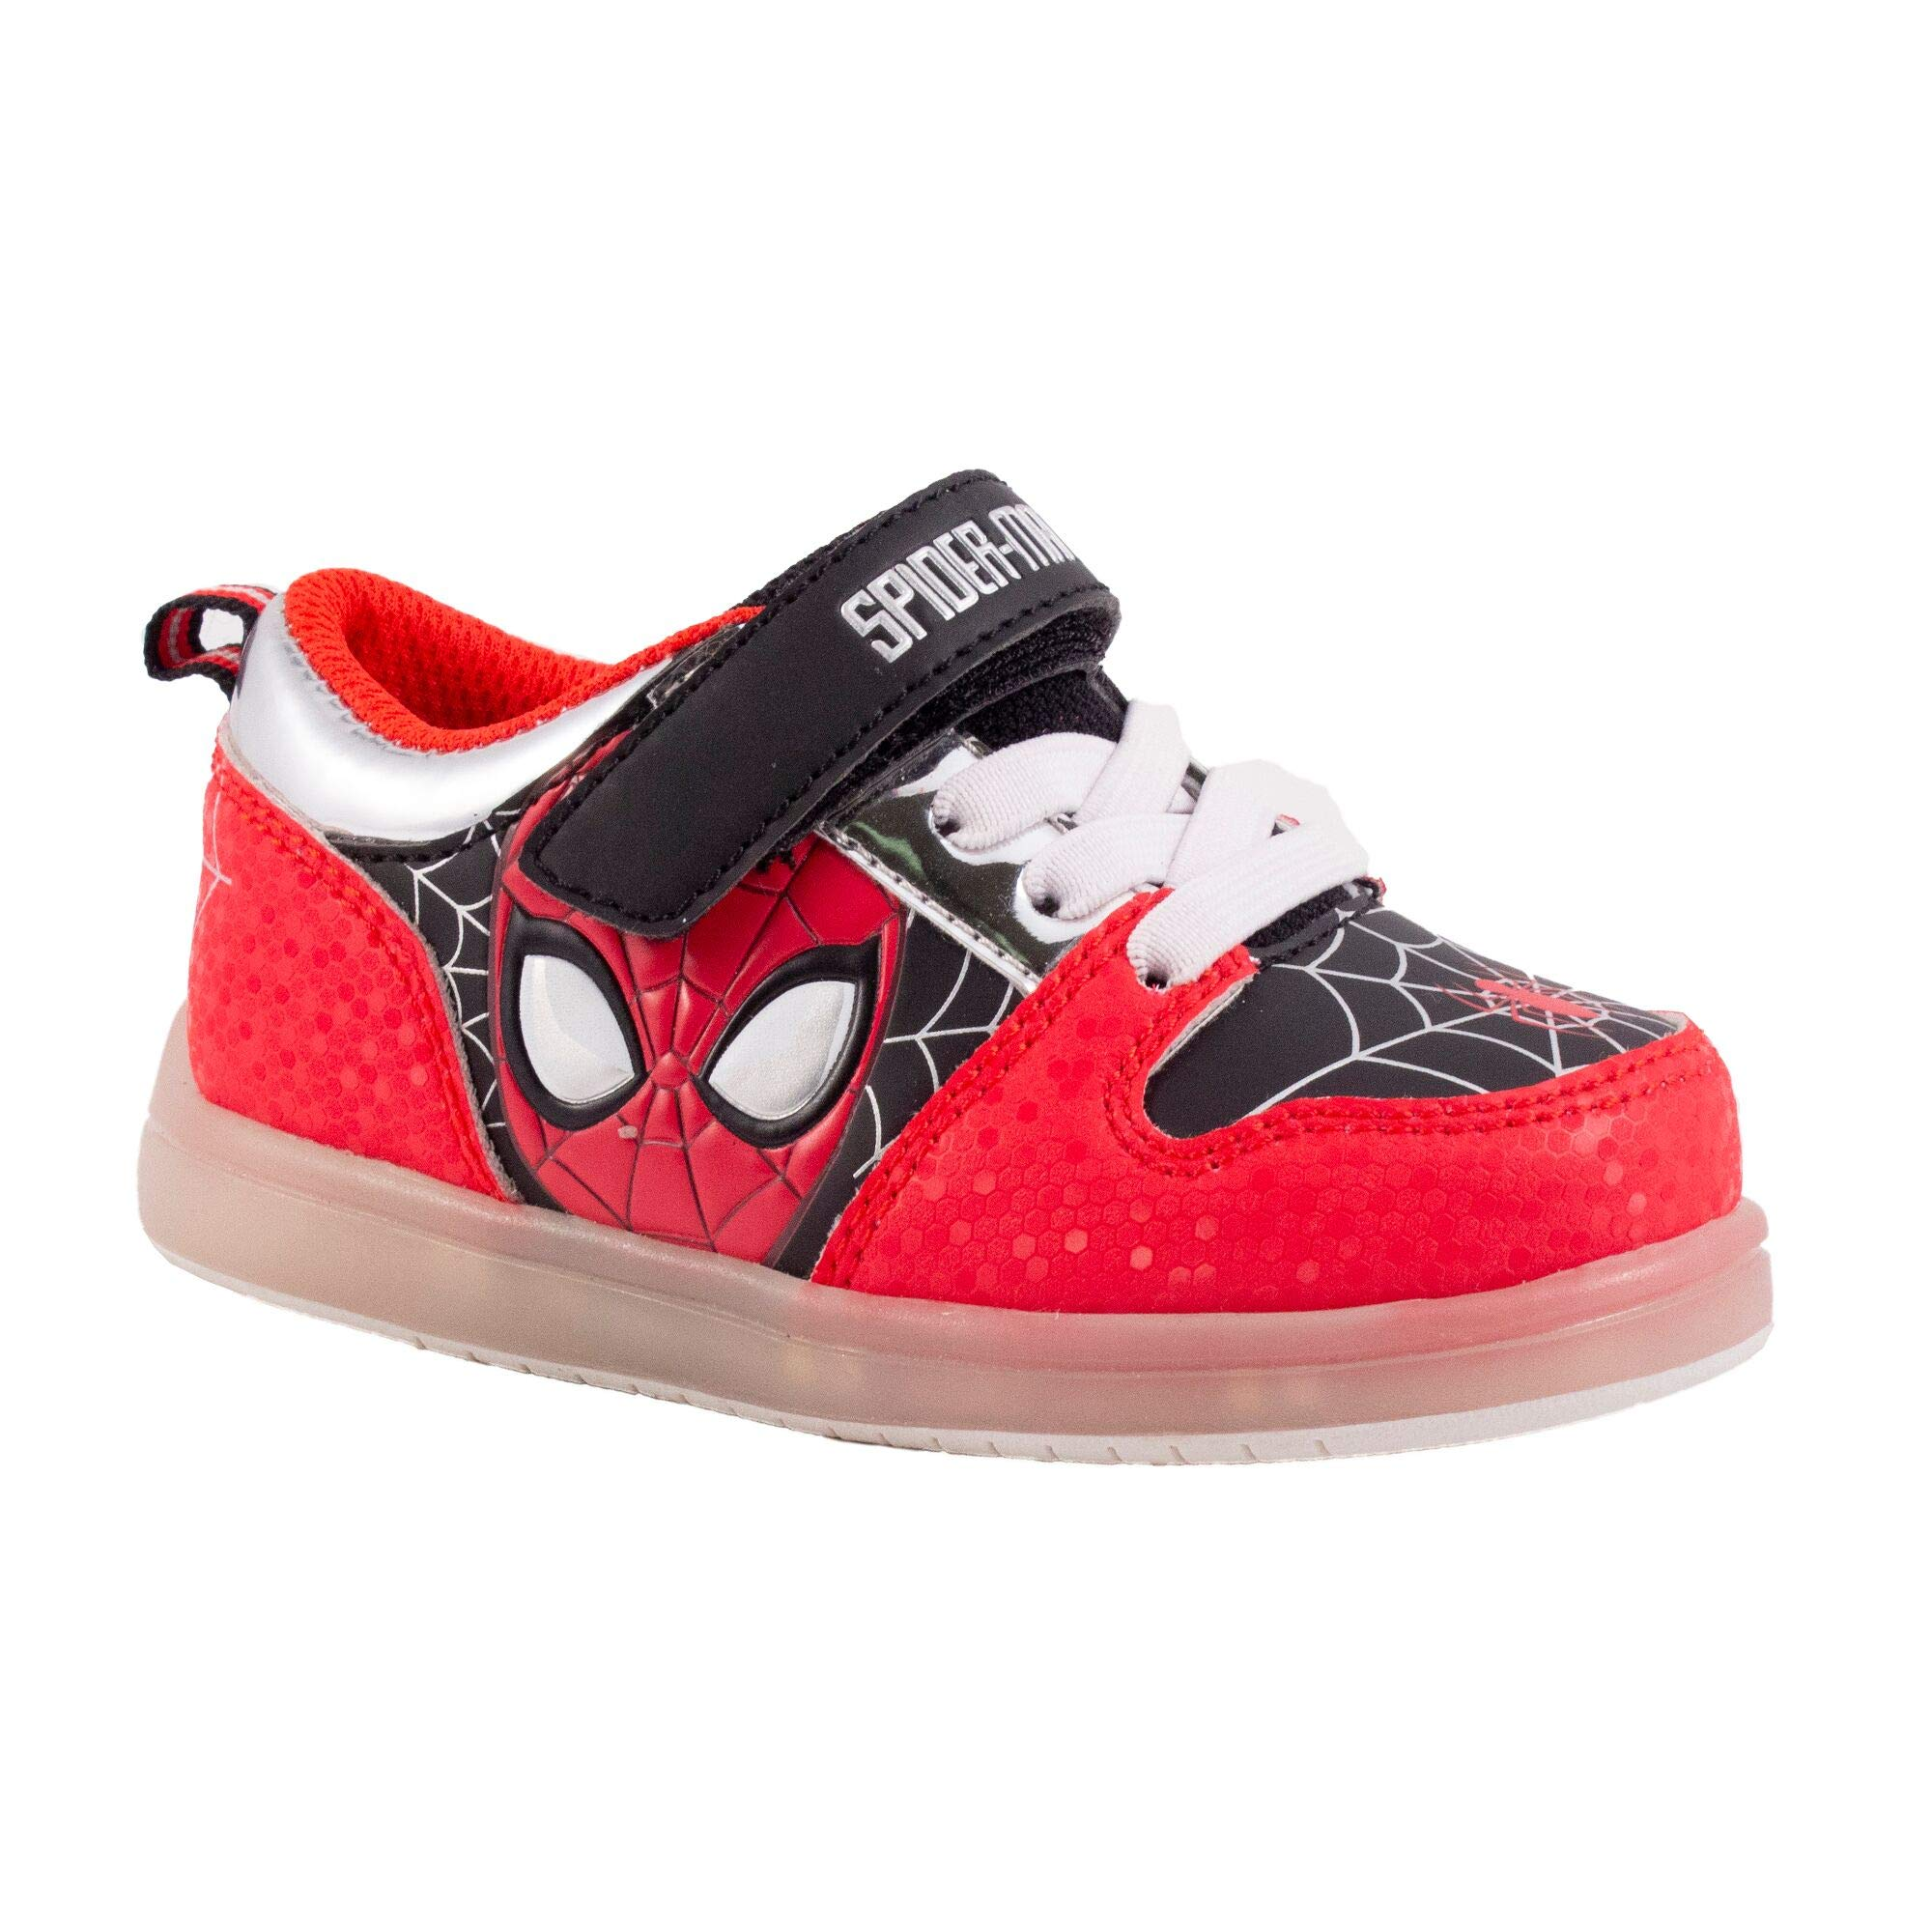 Favorite Characters Boys Marvel Spider-Man Motion Lighted Sneaker (Toddler/Little Kid), Size 11 Red